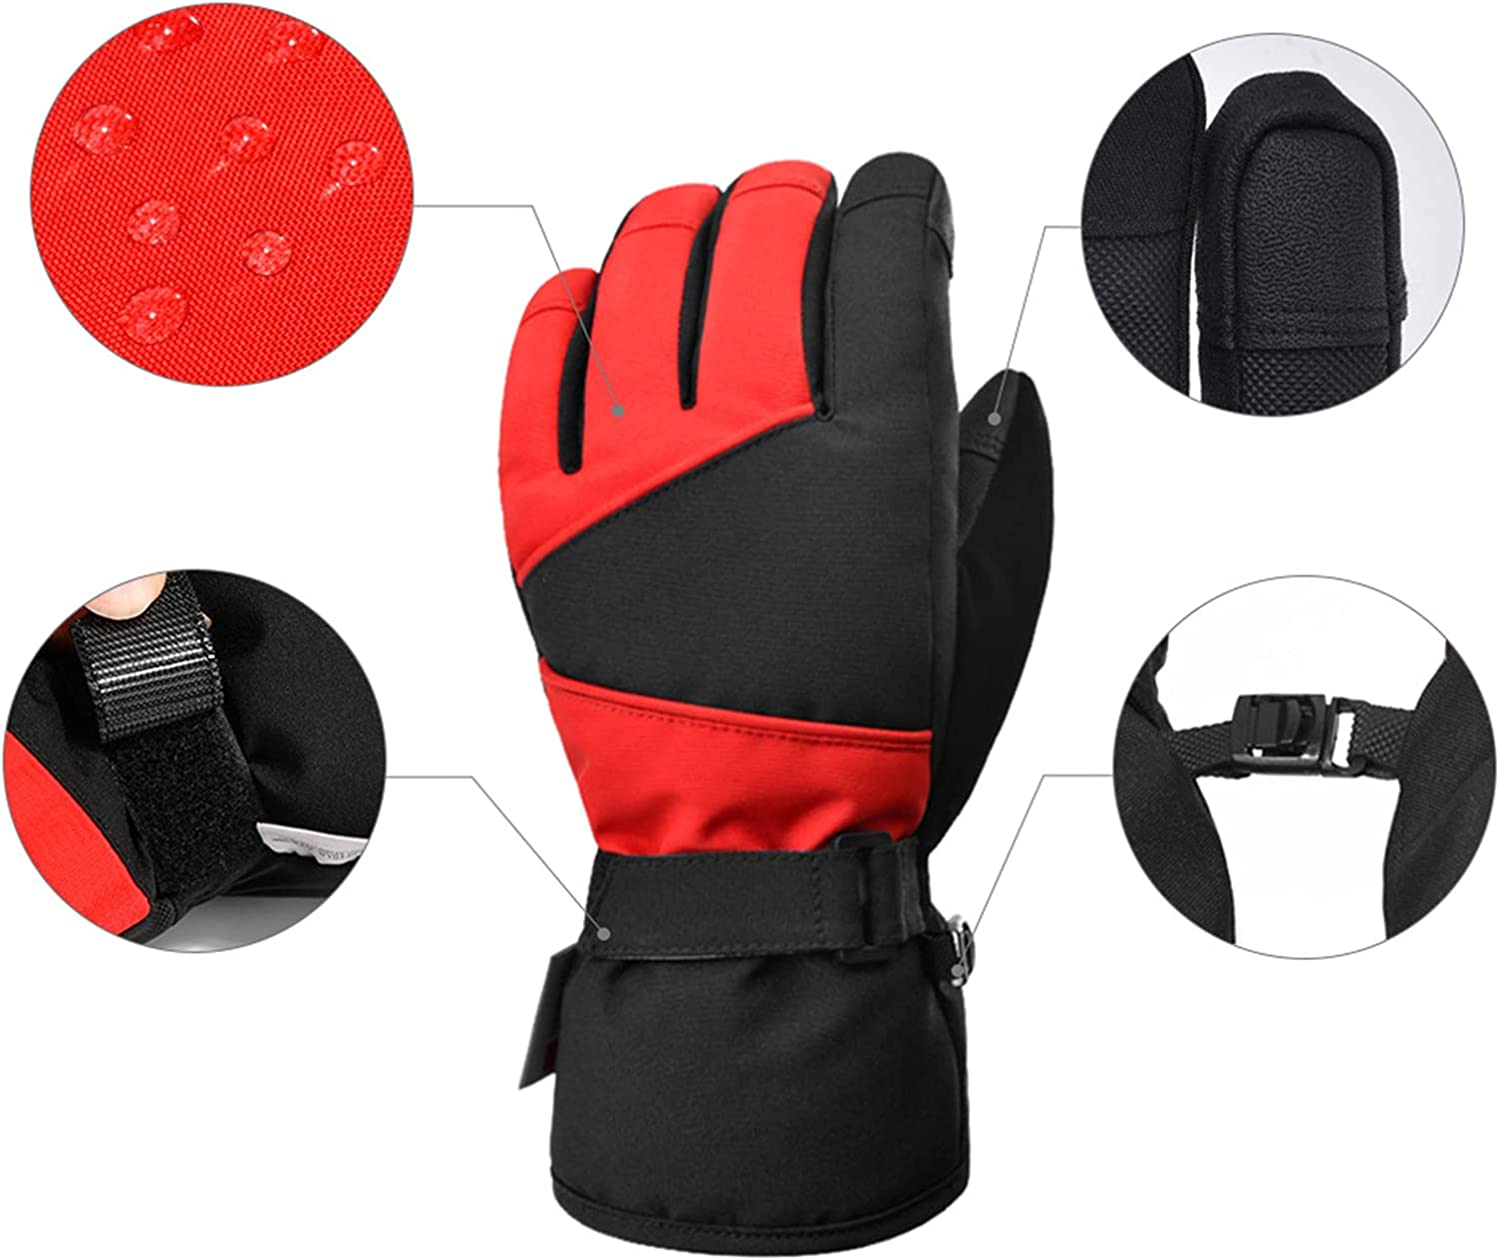 Winter Ski Gloves Waterproof Mitten Warm Windproof Gloves Outdoor Skiing Camping Riding Mittens for Boys Girls